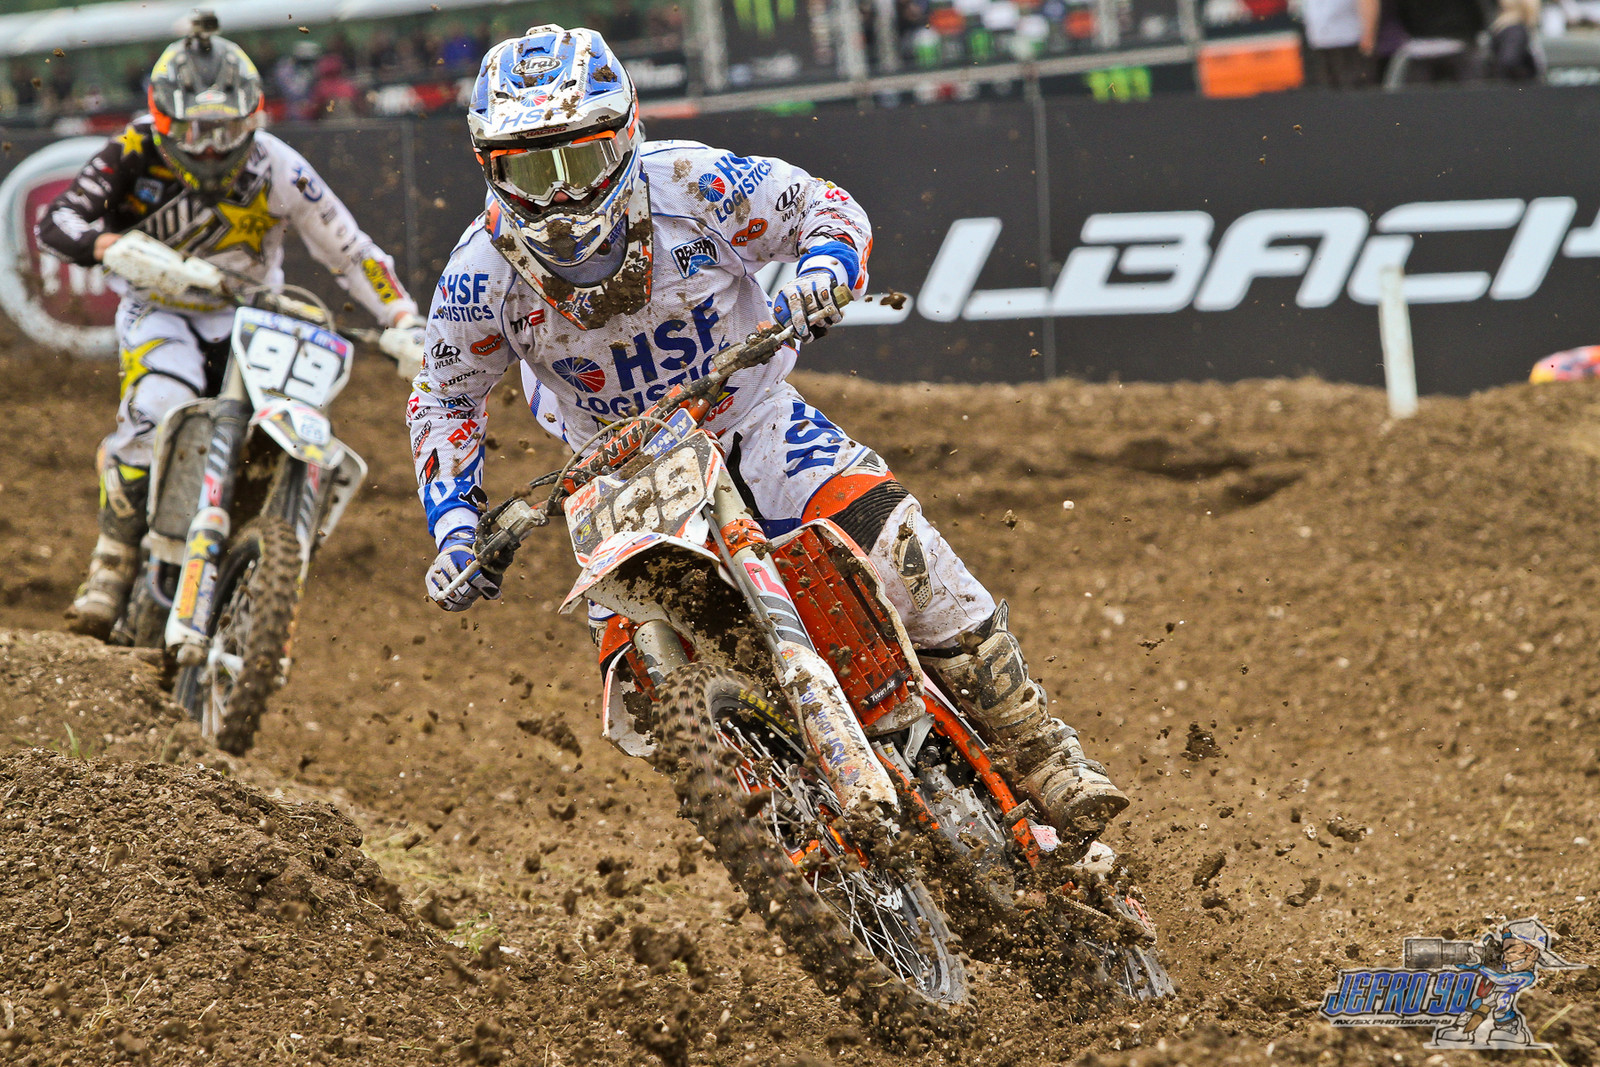 Brian Bogers - Photo Gallery: MXGP of Great Britain - Motocross Pictures - Vital MX